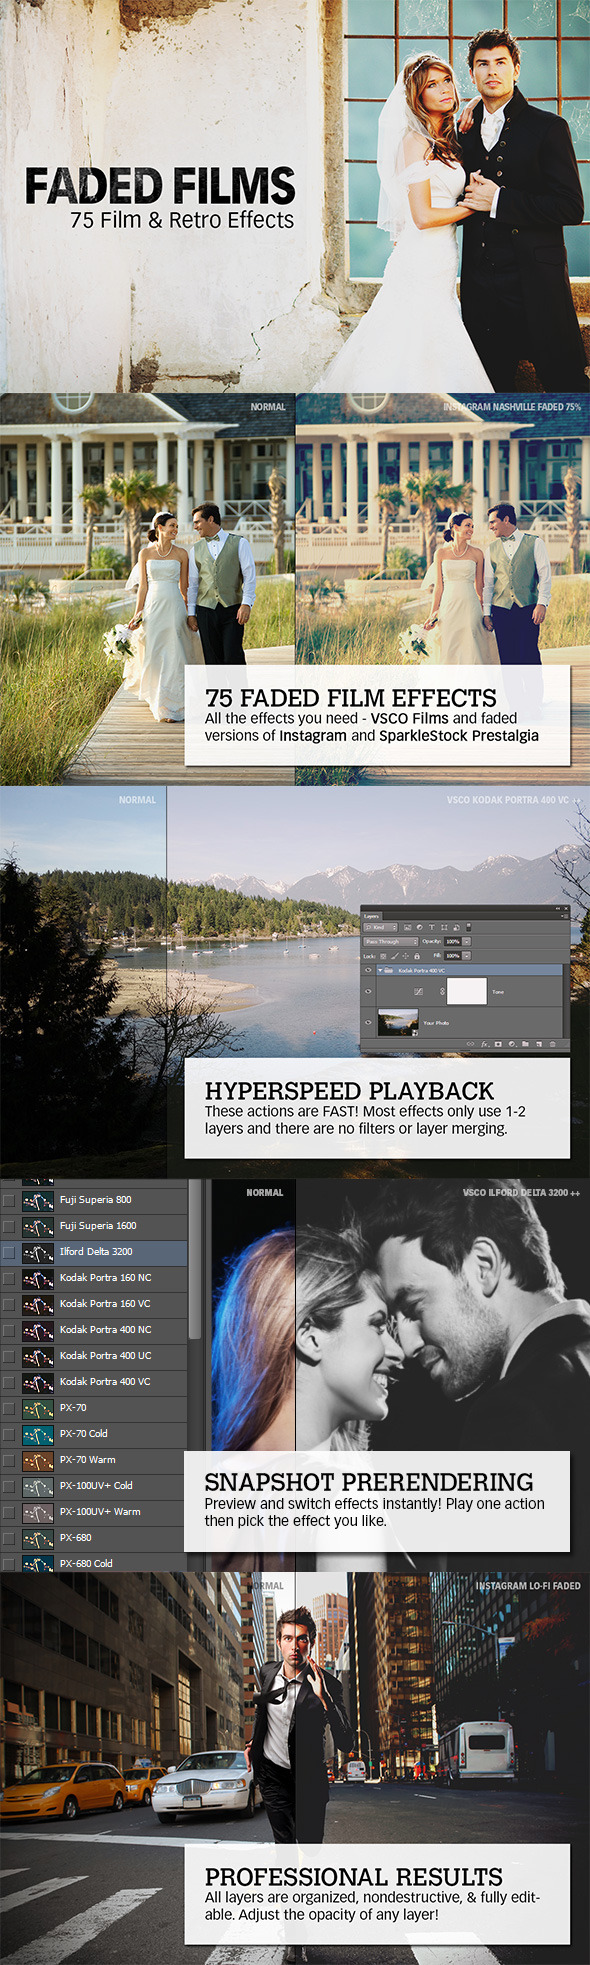 Faded Films - 72 Film & Retro Effect - Photo Effects Actions